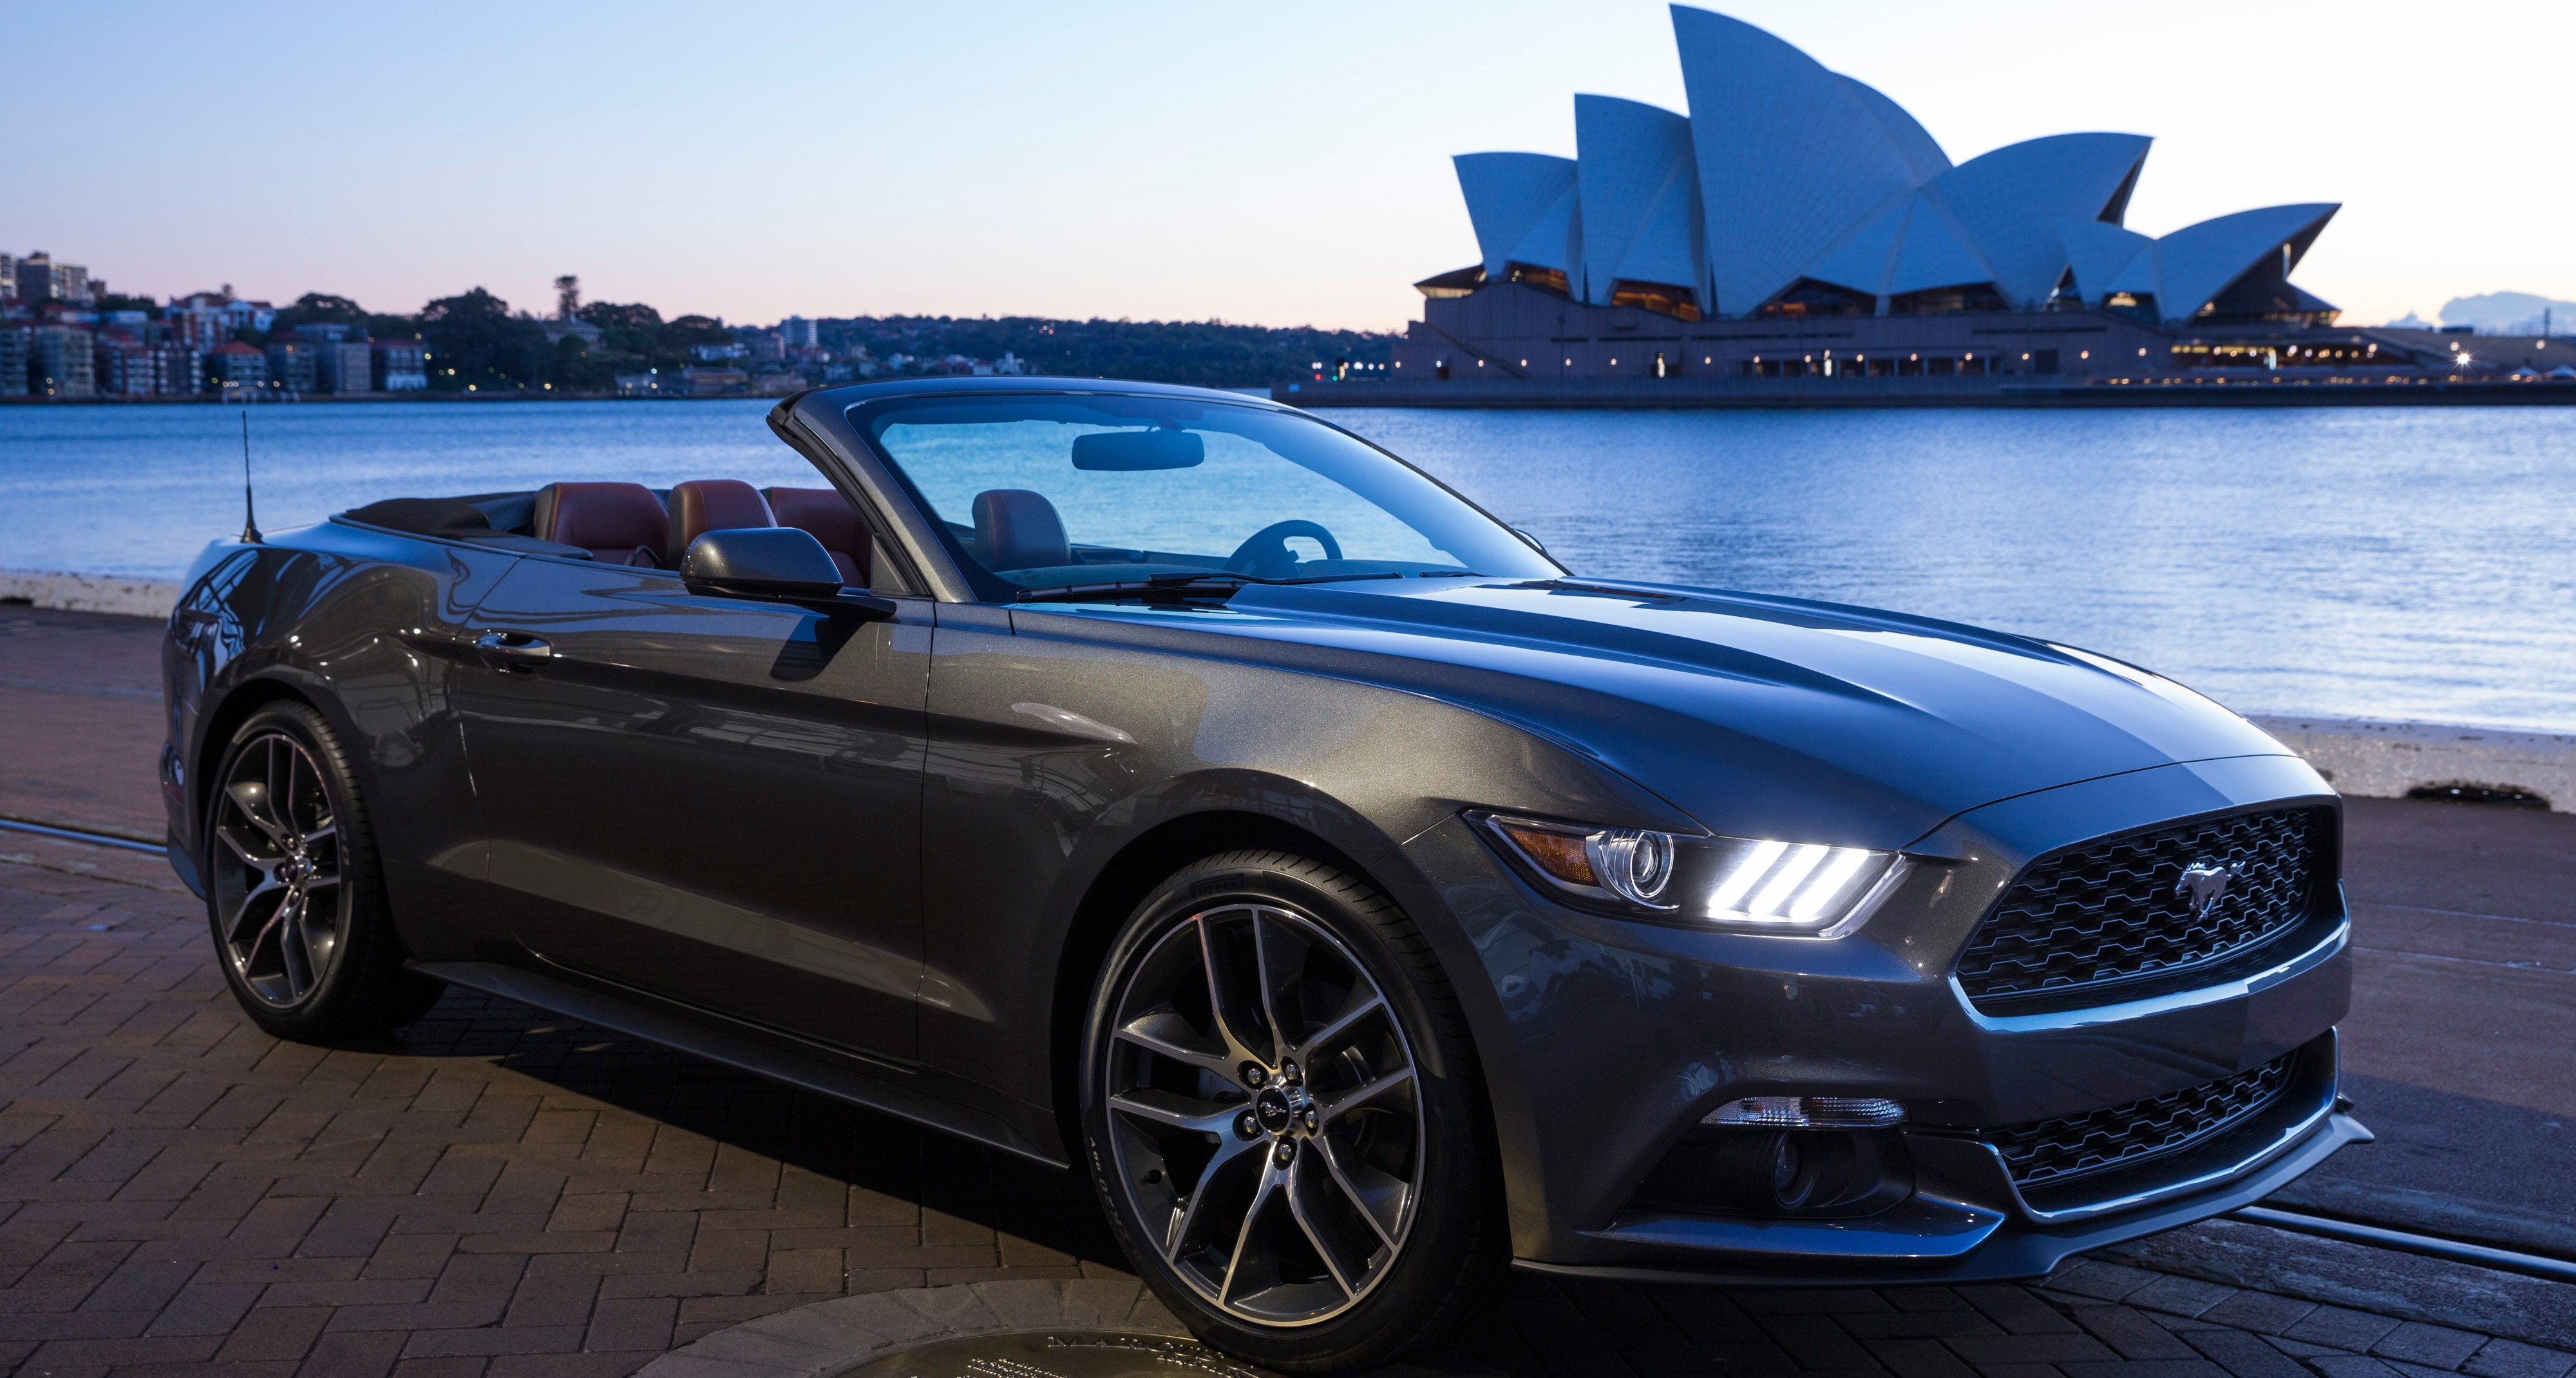 ford mustang convertible v 2015 pictures 11 - 2015 Ford Mustang Gt Convertible Black